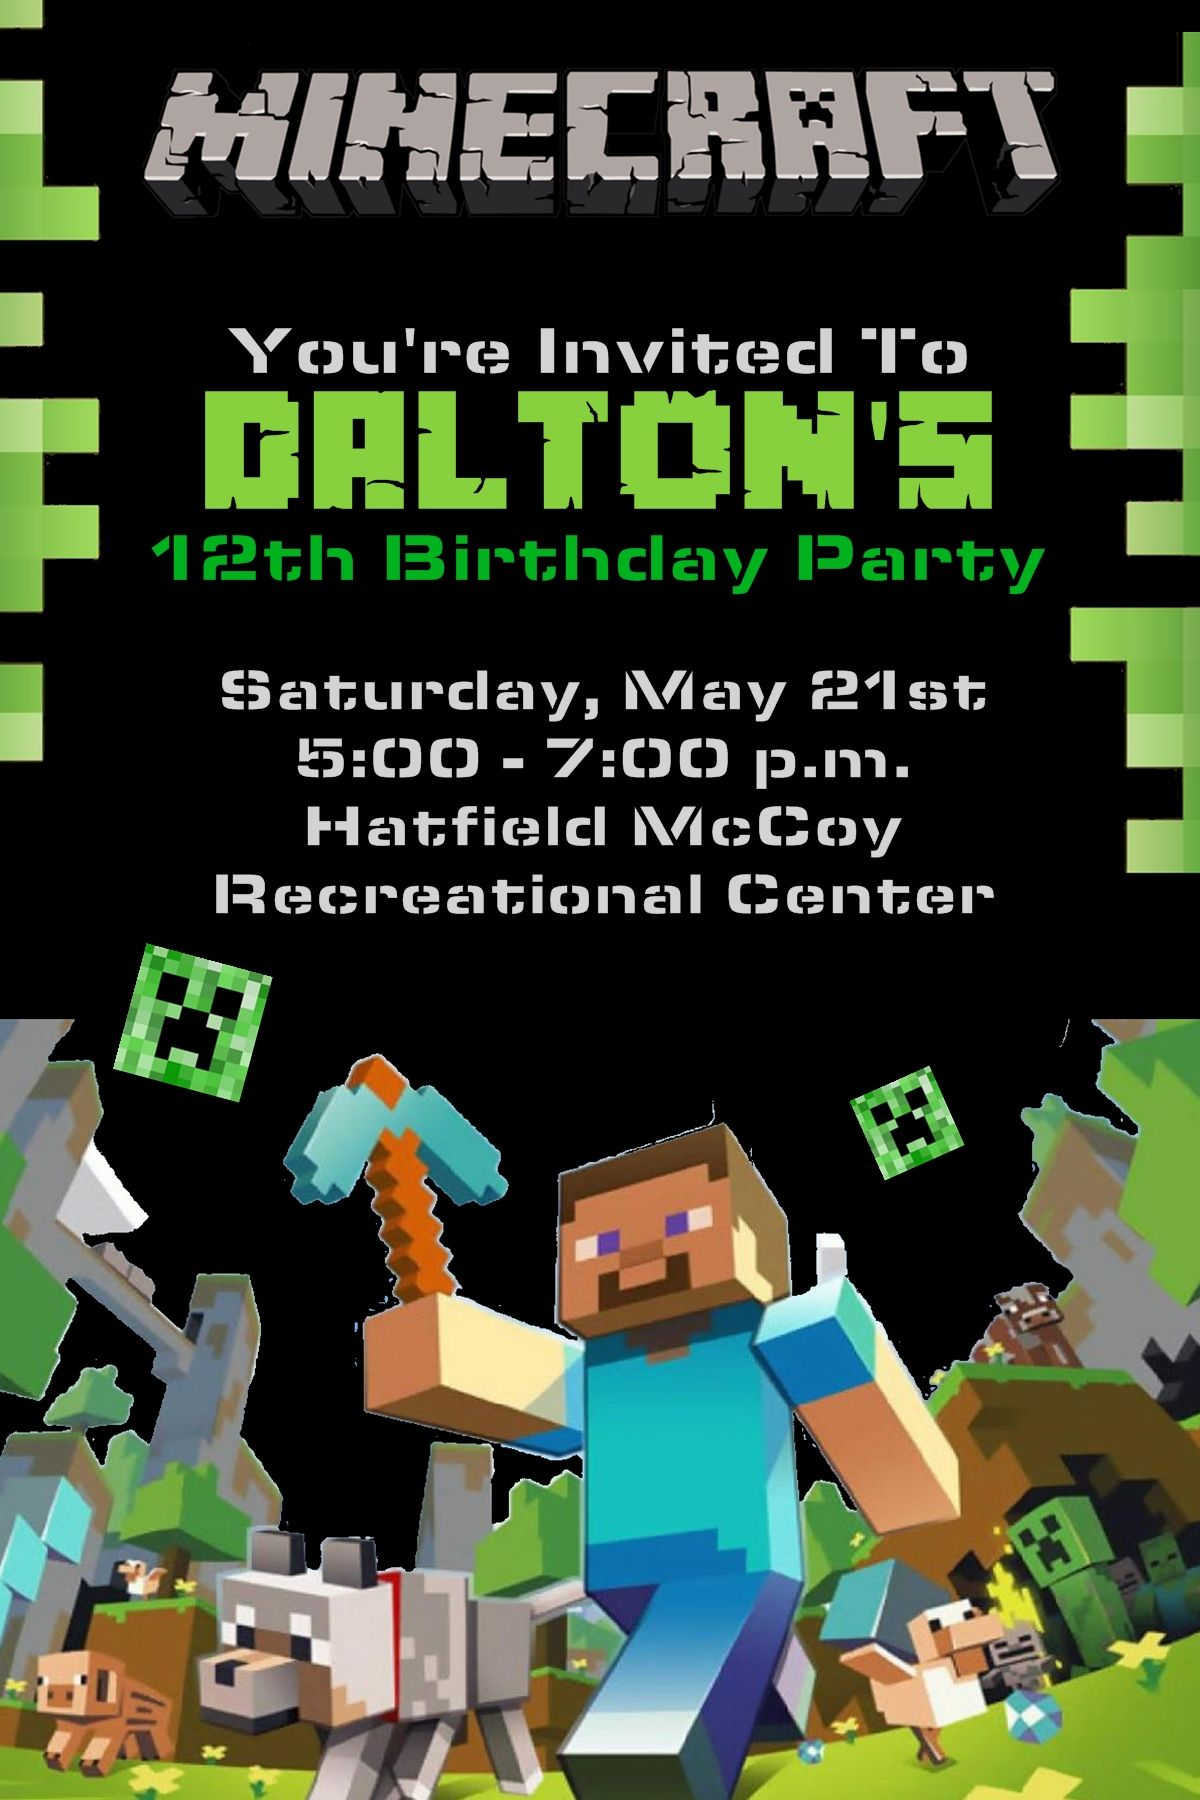 4x6 Minecraft Birthday Invitation Contact Me Via Email At Aswiney01yahoo Or Simply